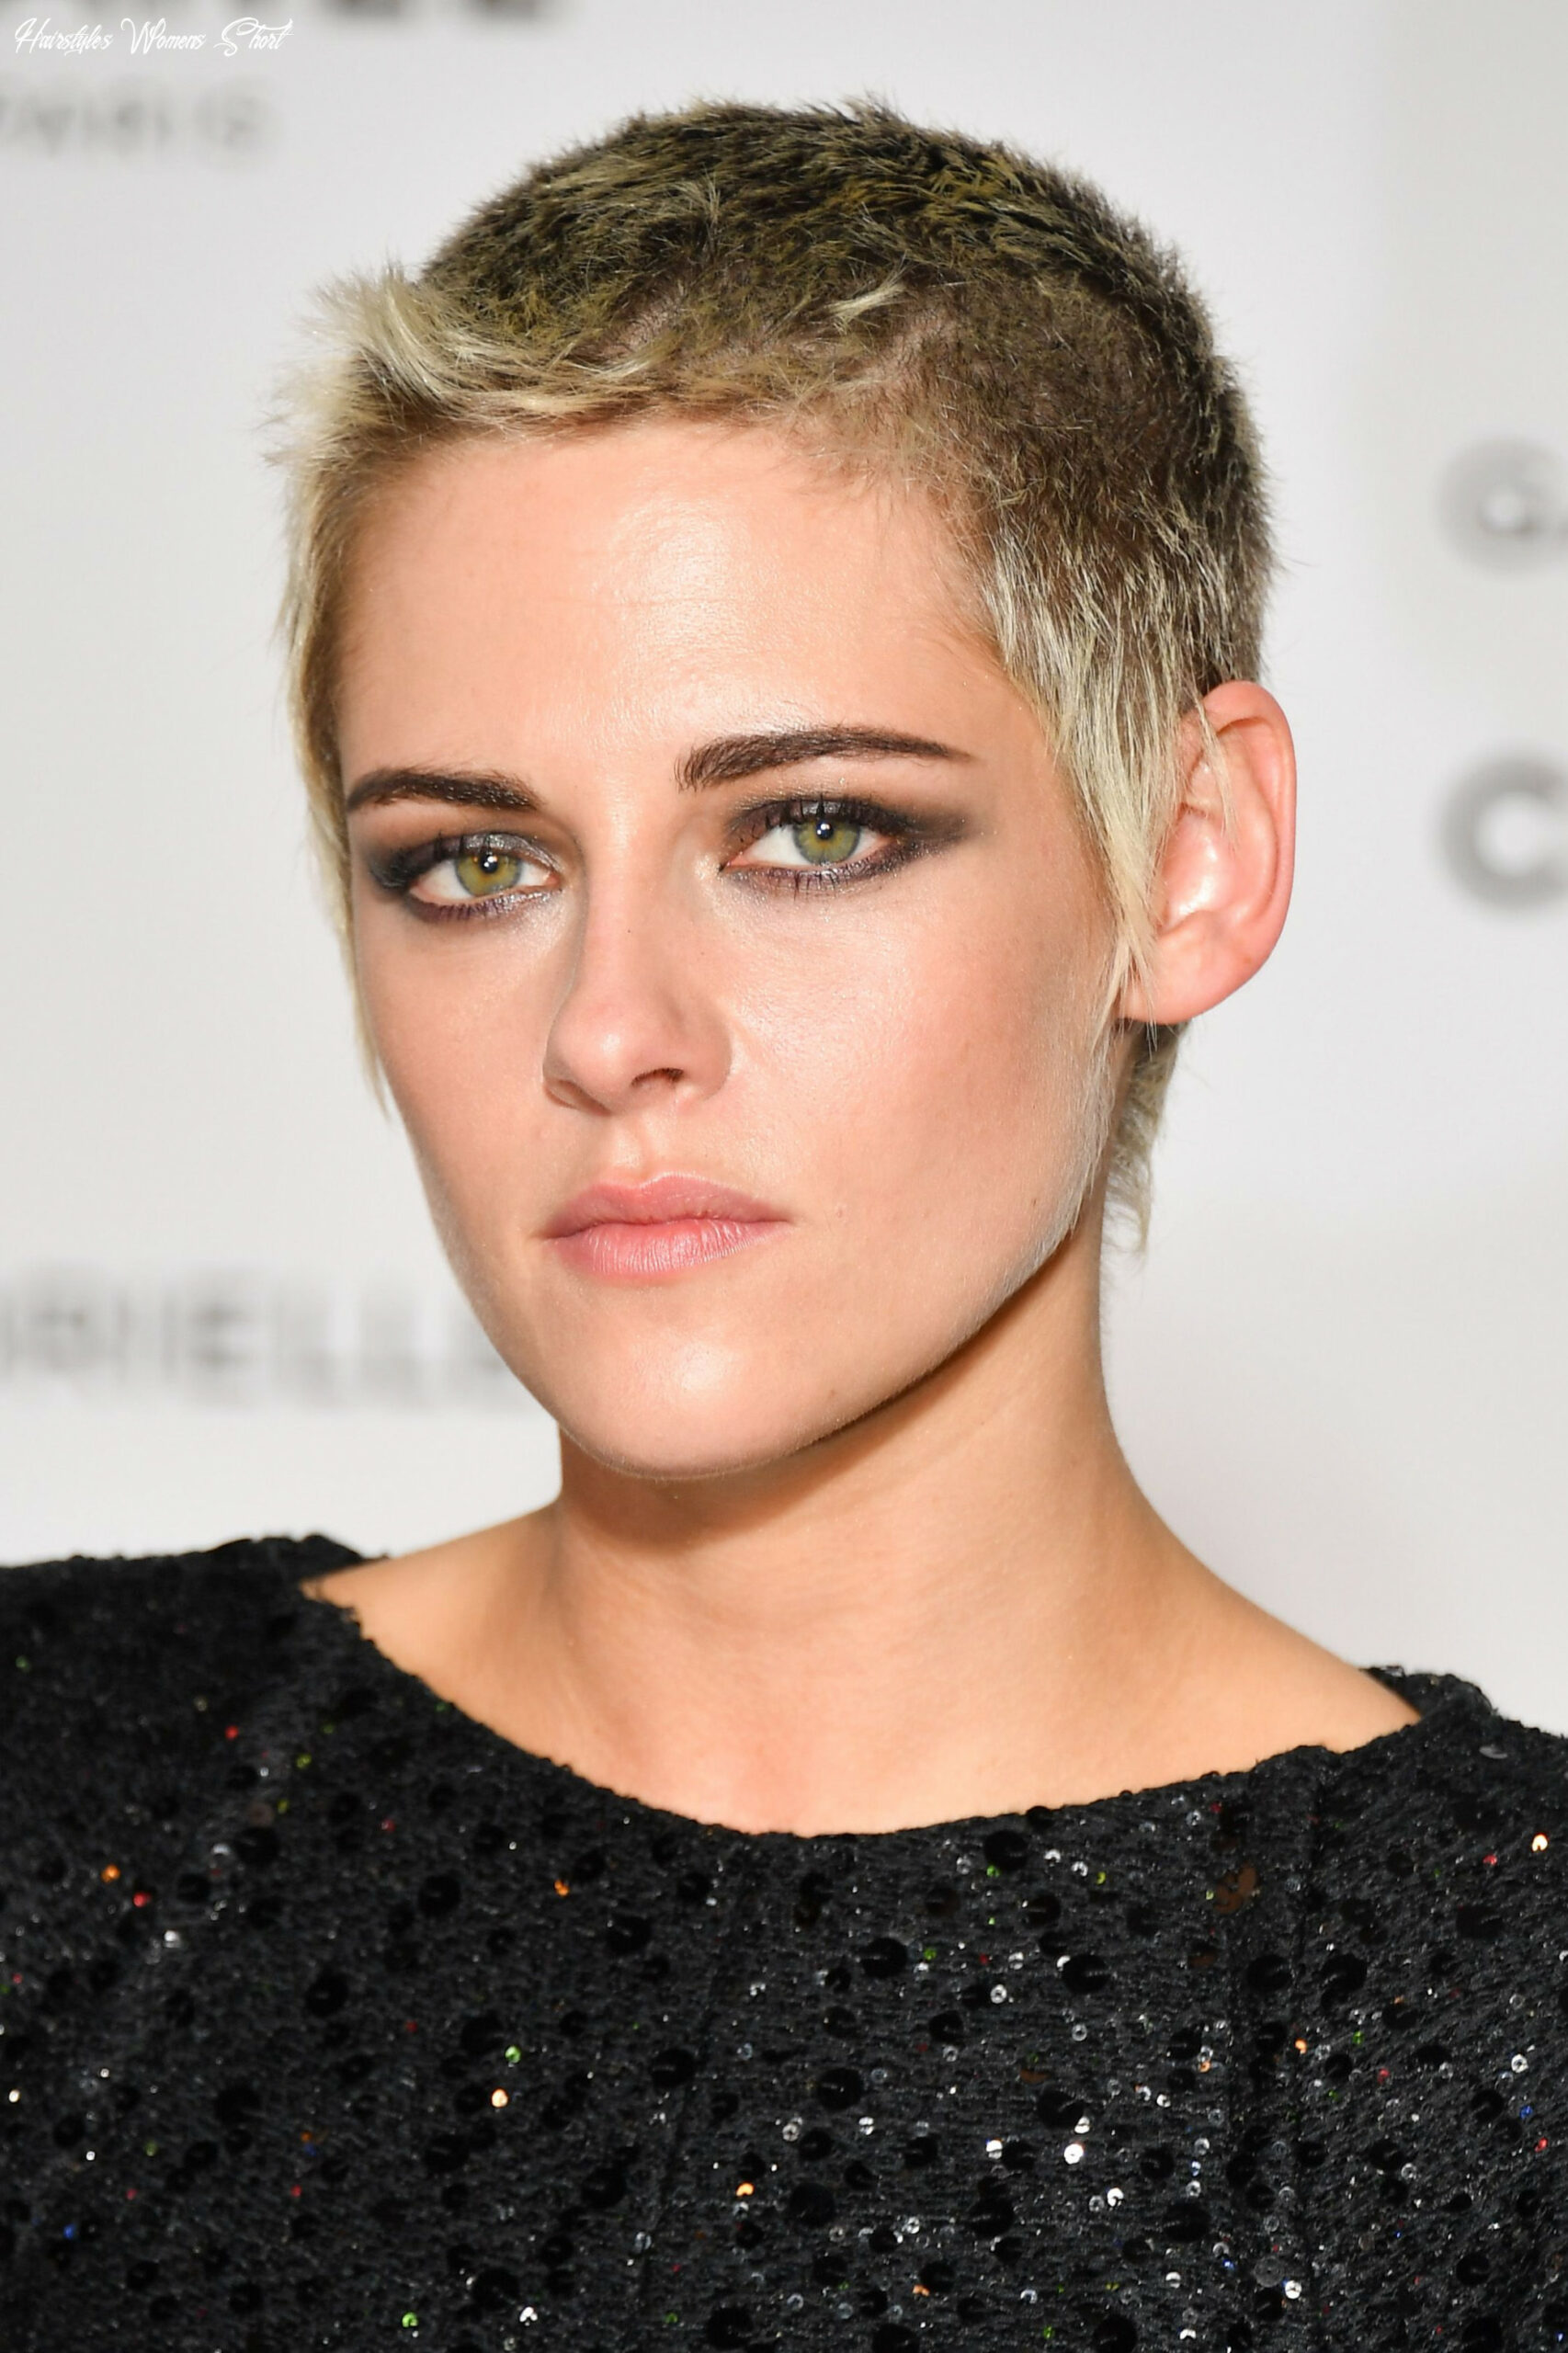 9 cute short hairstyles for women how to style short haircuts hairstyles womens short